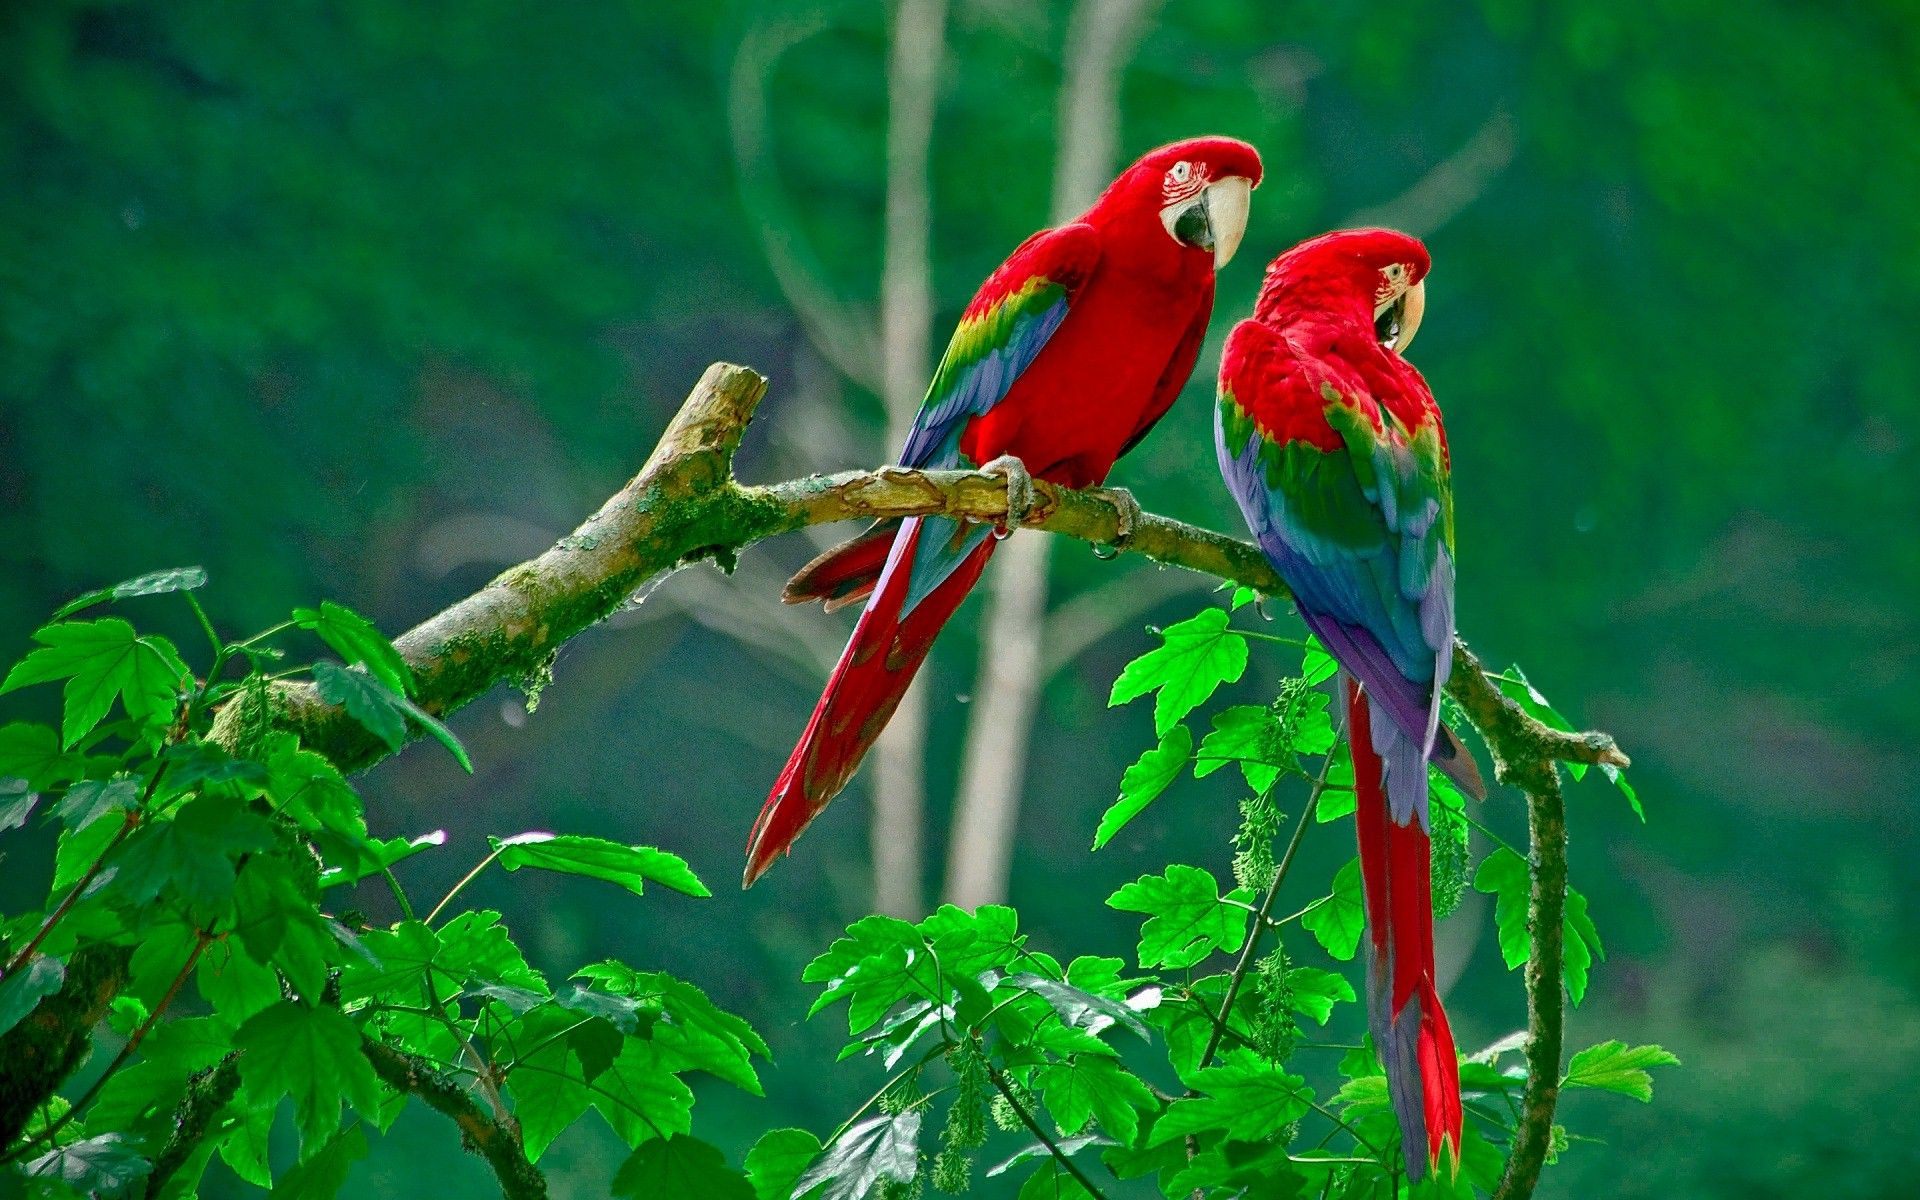 Red Parrot wallpaper high quality | dang | Parrot ...